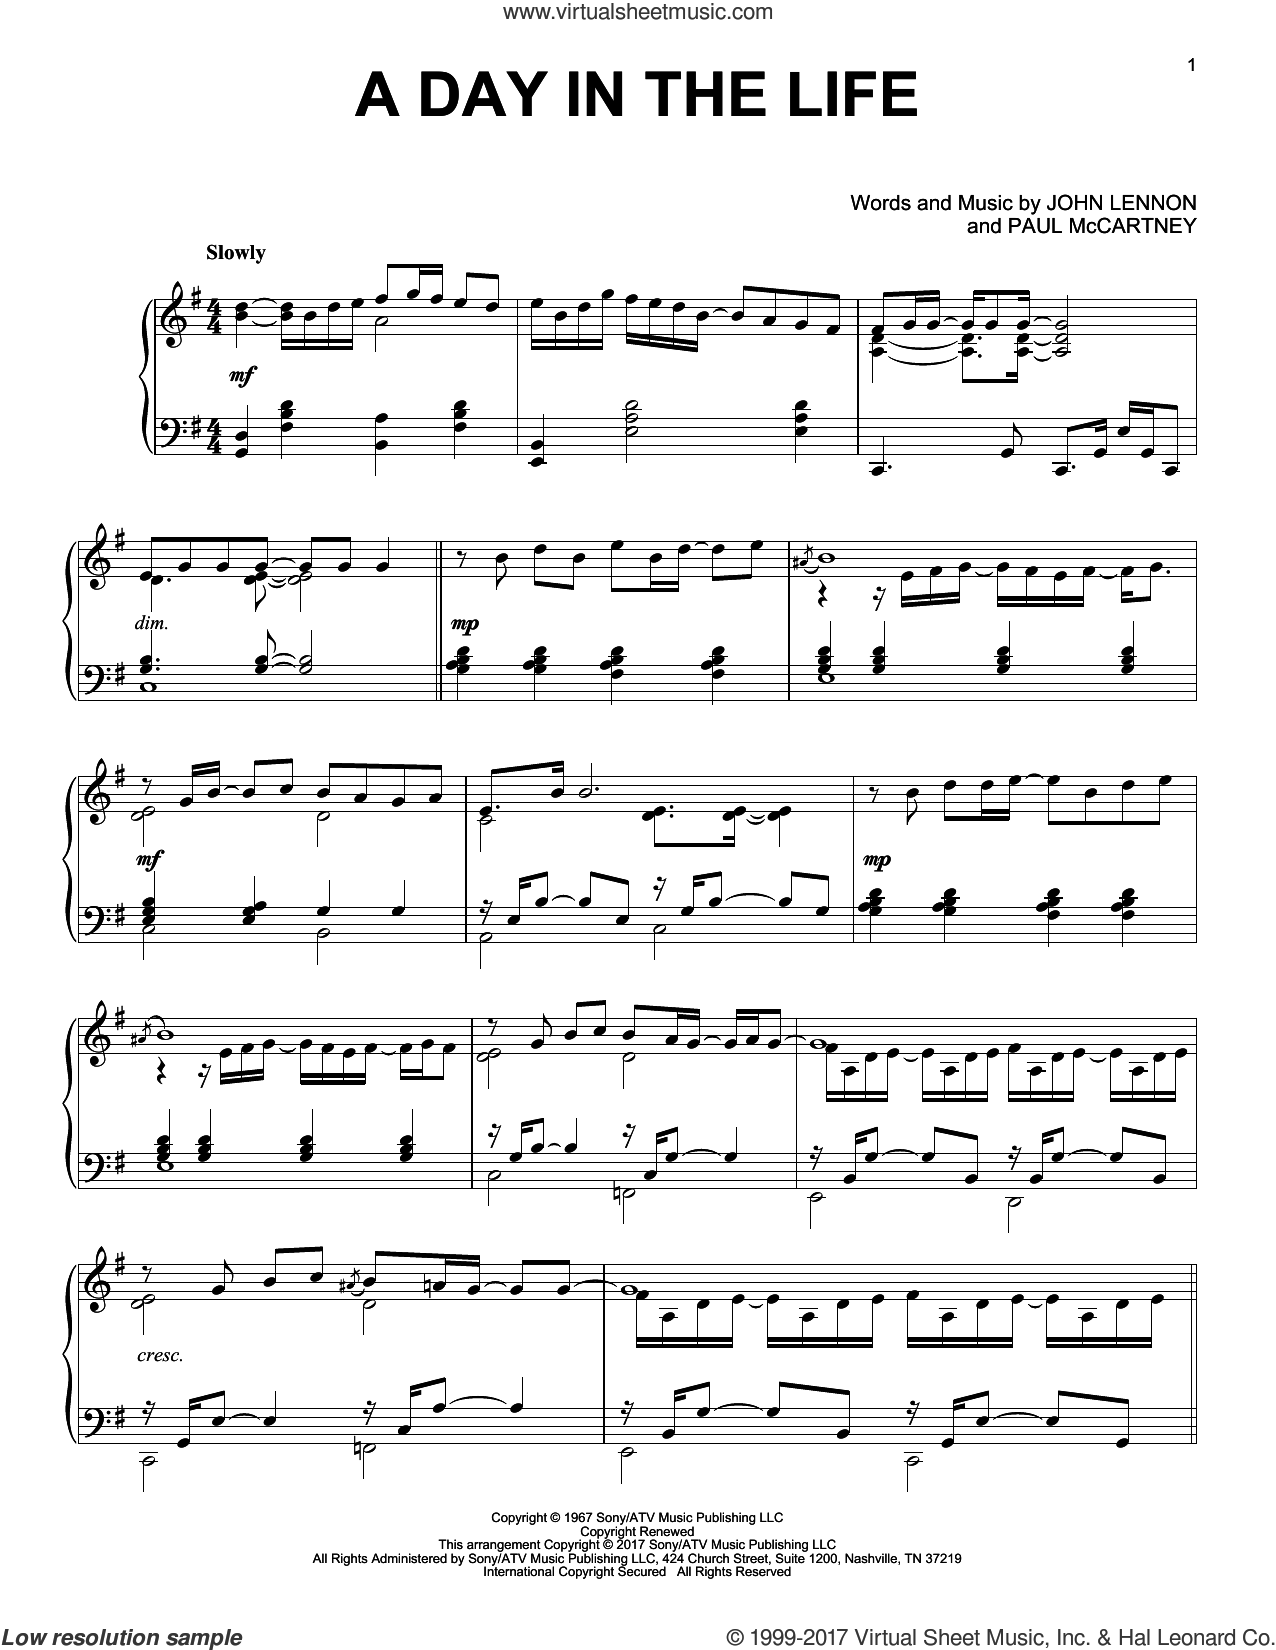 A Day In The Life sheet music for piano solo by The Beatles, John Lennon and Paul McCartney, intermediate skill level